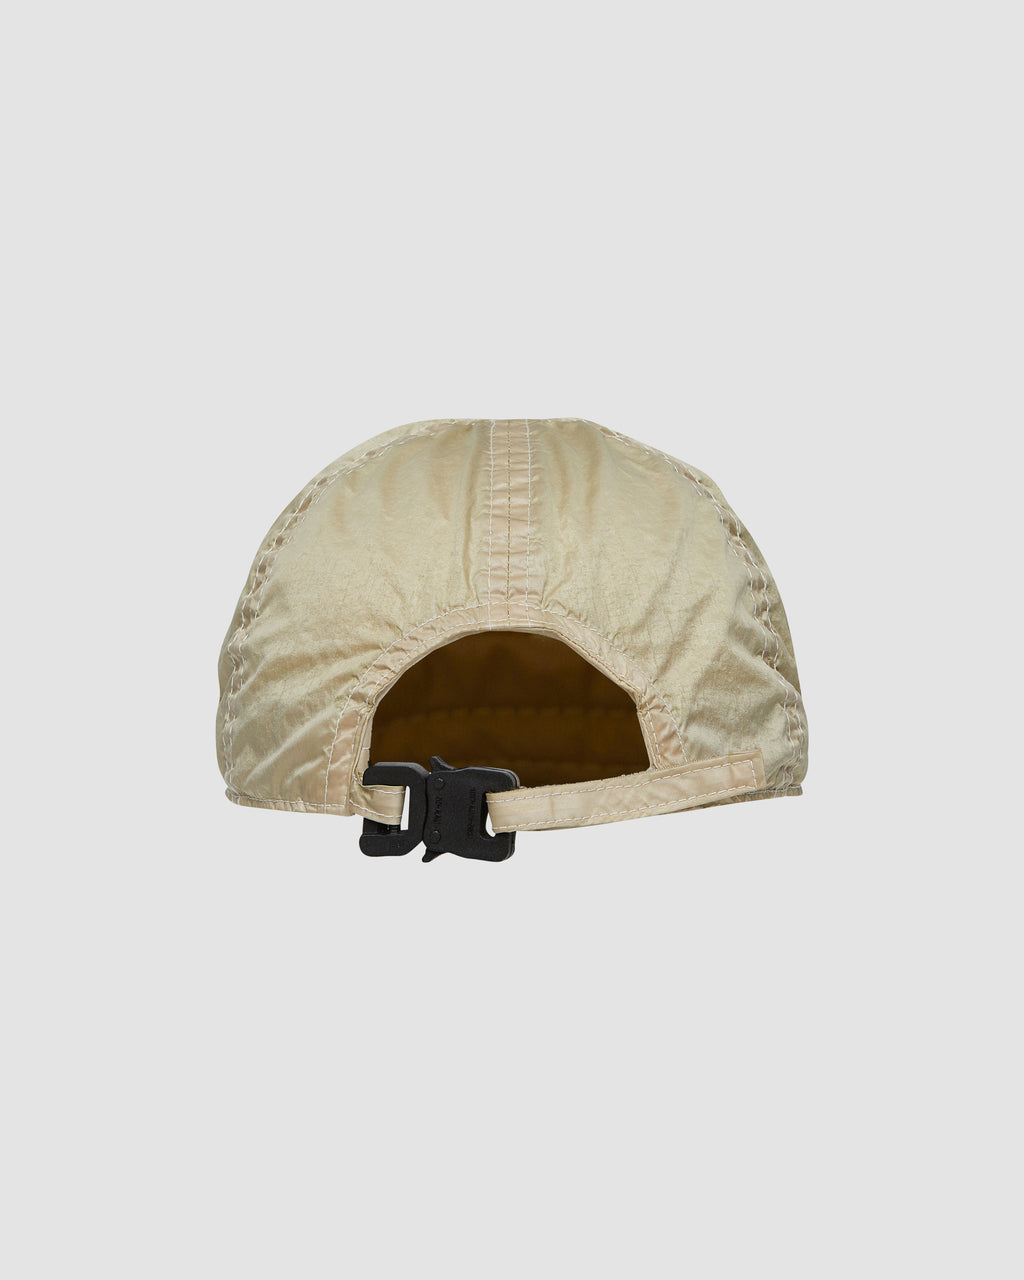 1017 ALYX 9SM | LOGO HAT W NYLON BUCKLE | Hat | Accessories, DARK SAND, Google Shopping, Hat, HATS, Man, S20, S20 Drop II, UNISEX, Woman